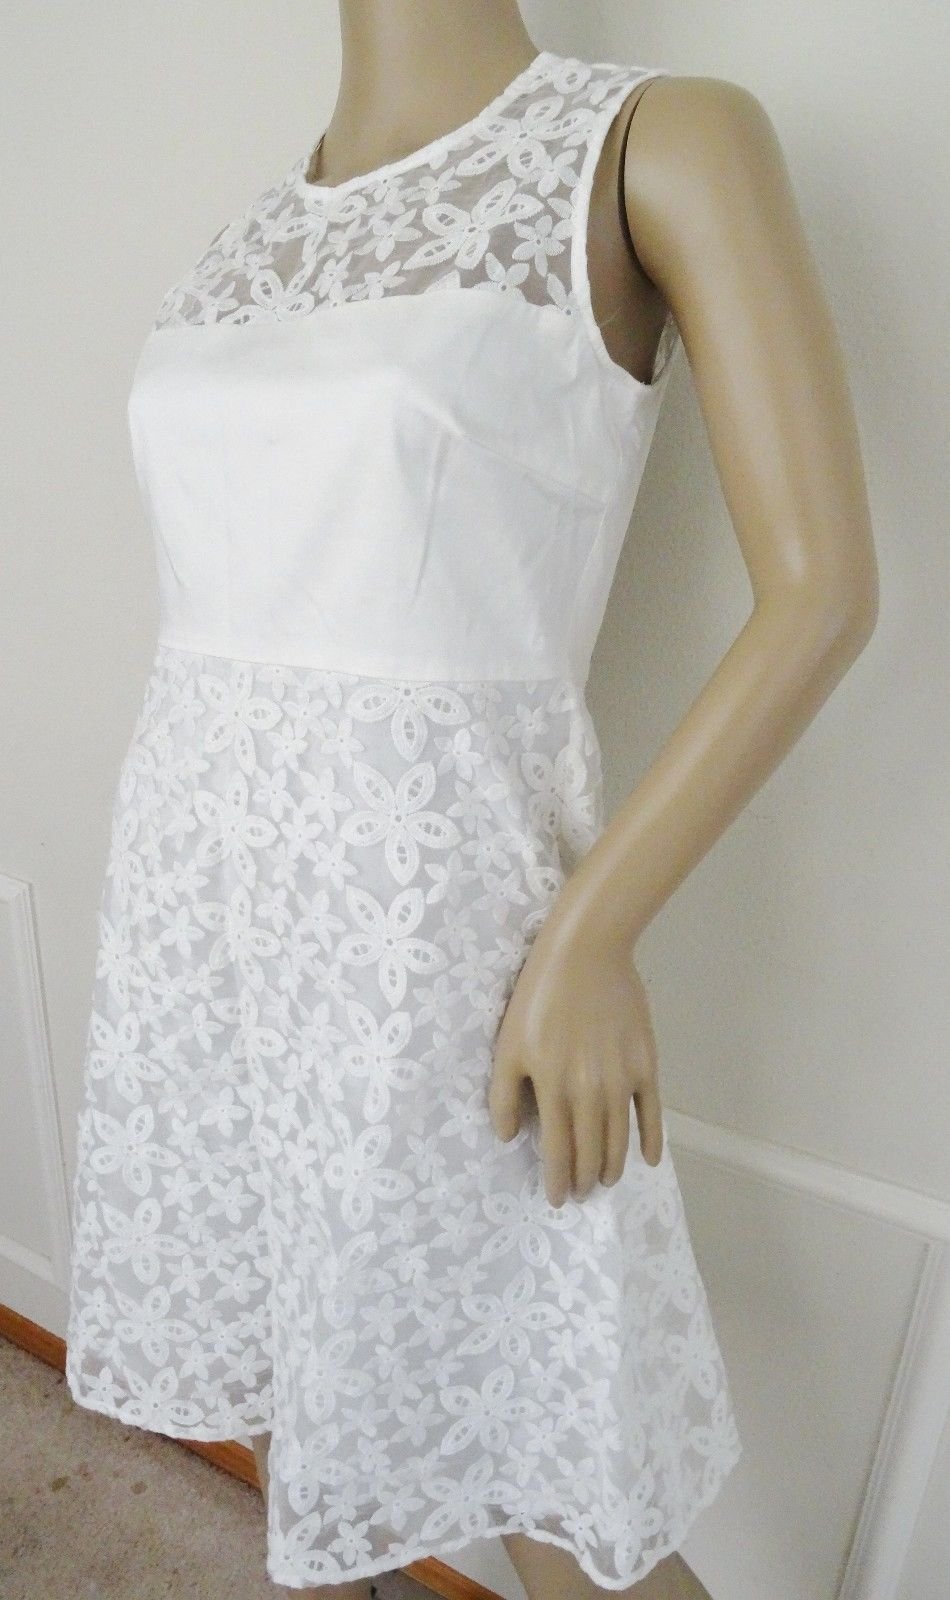 Nwt Calvin Klein Sleeveless Mesh Insert Cocktail Party A line Dress Sz 2 White